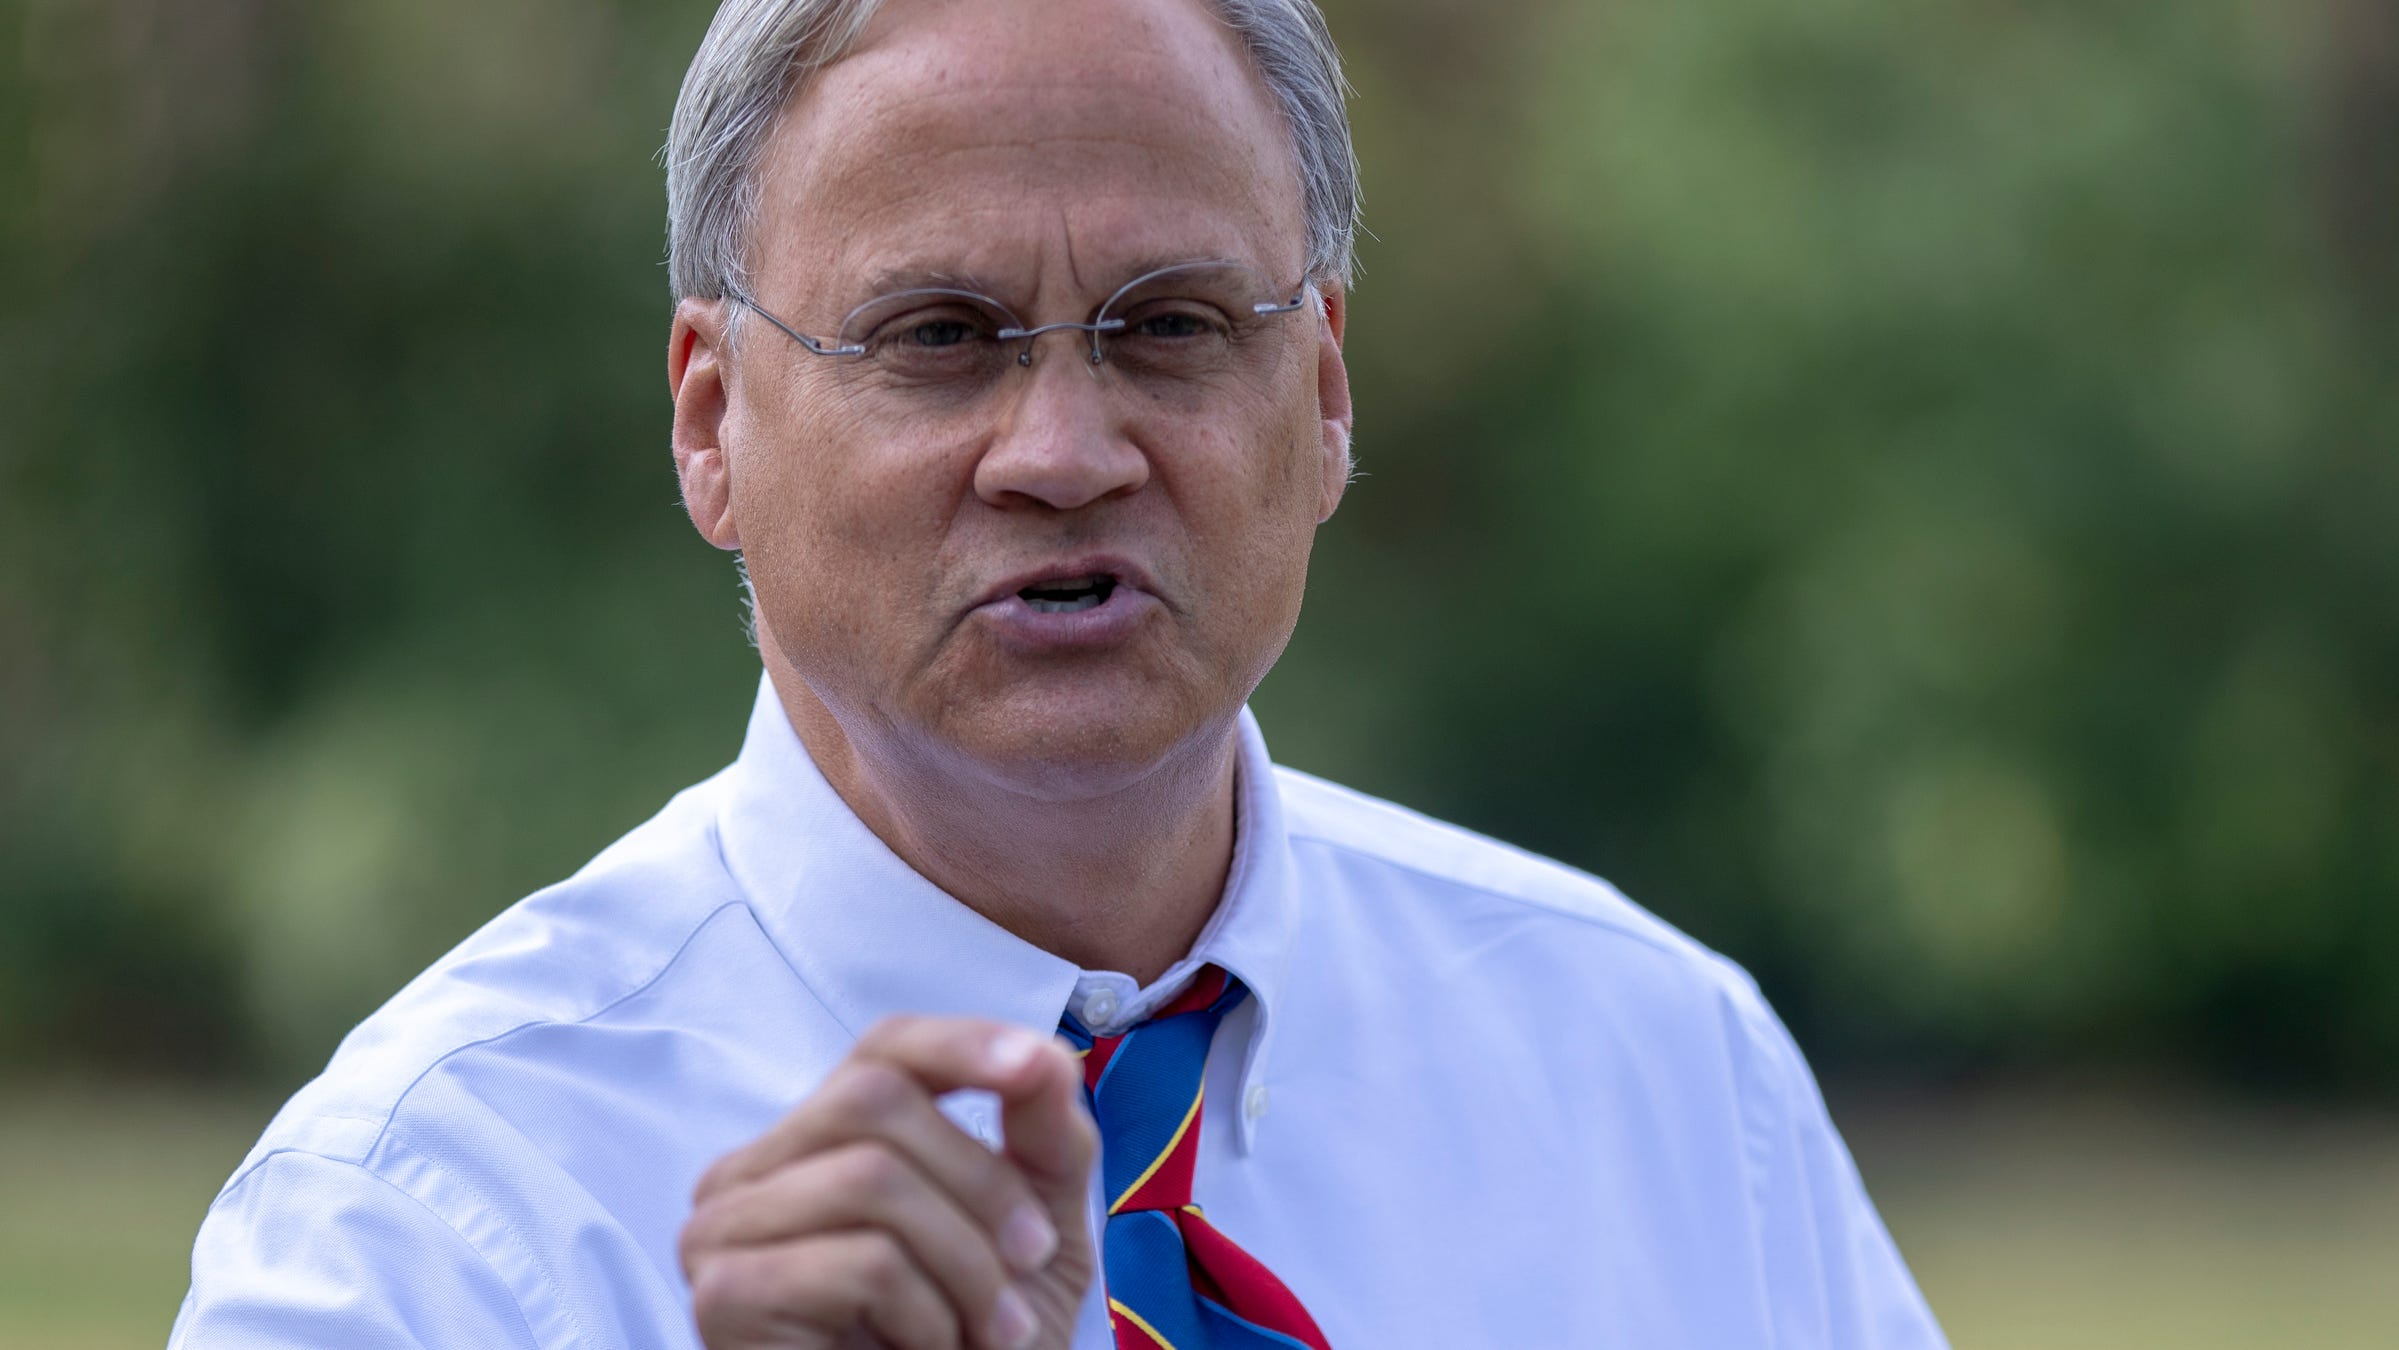 Jim Merritt: Here's why Indiana's job growth depends on clean energy